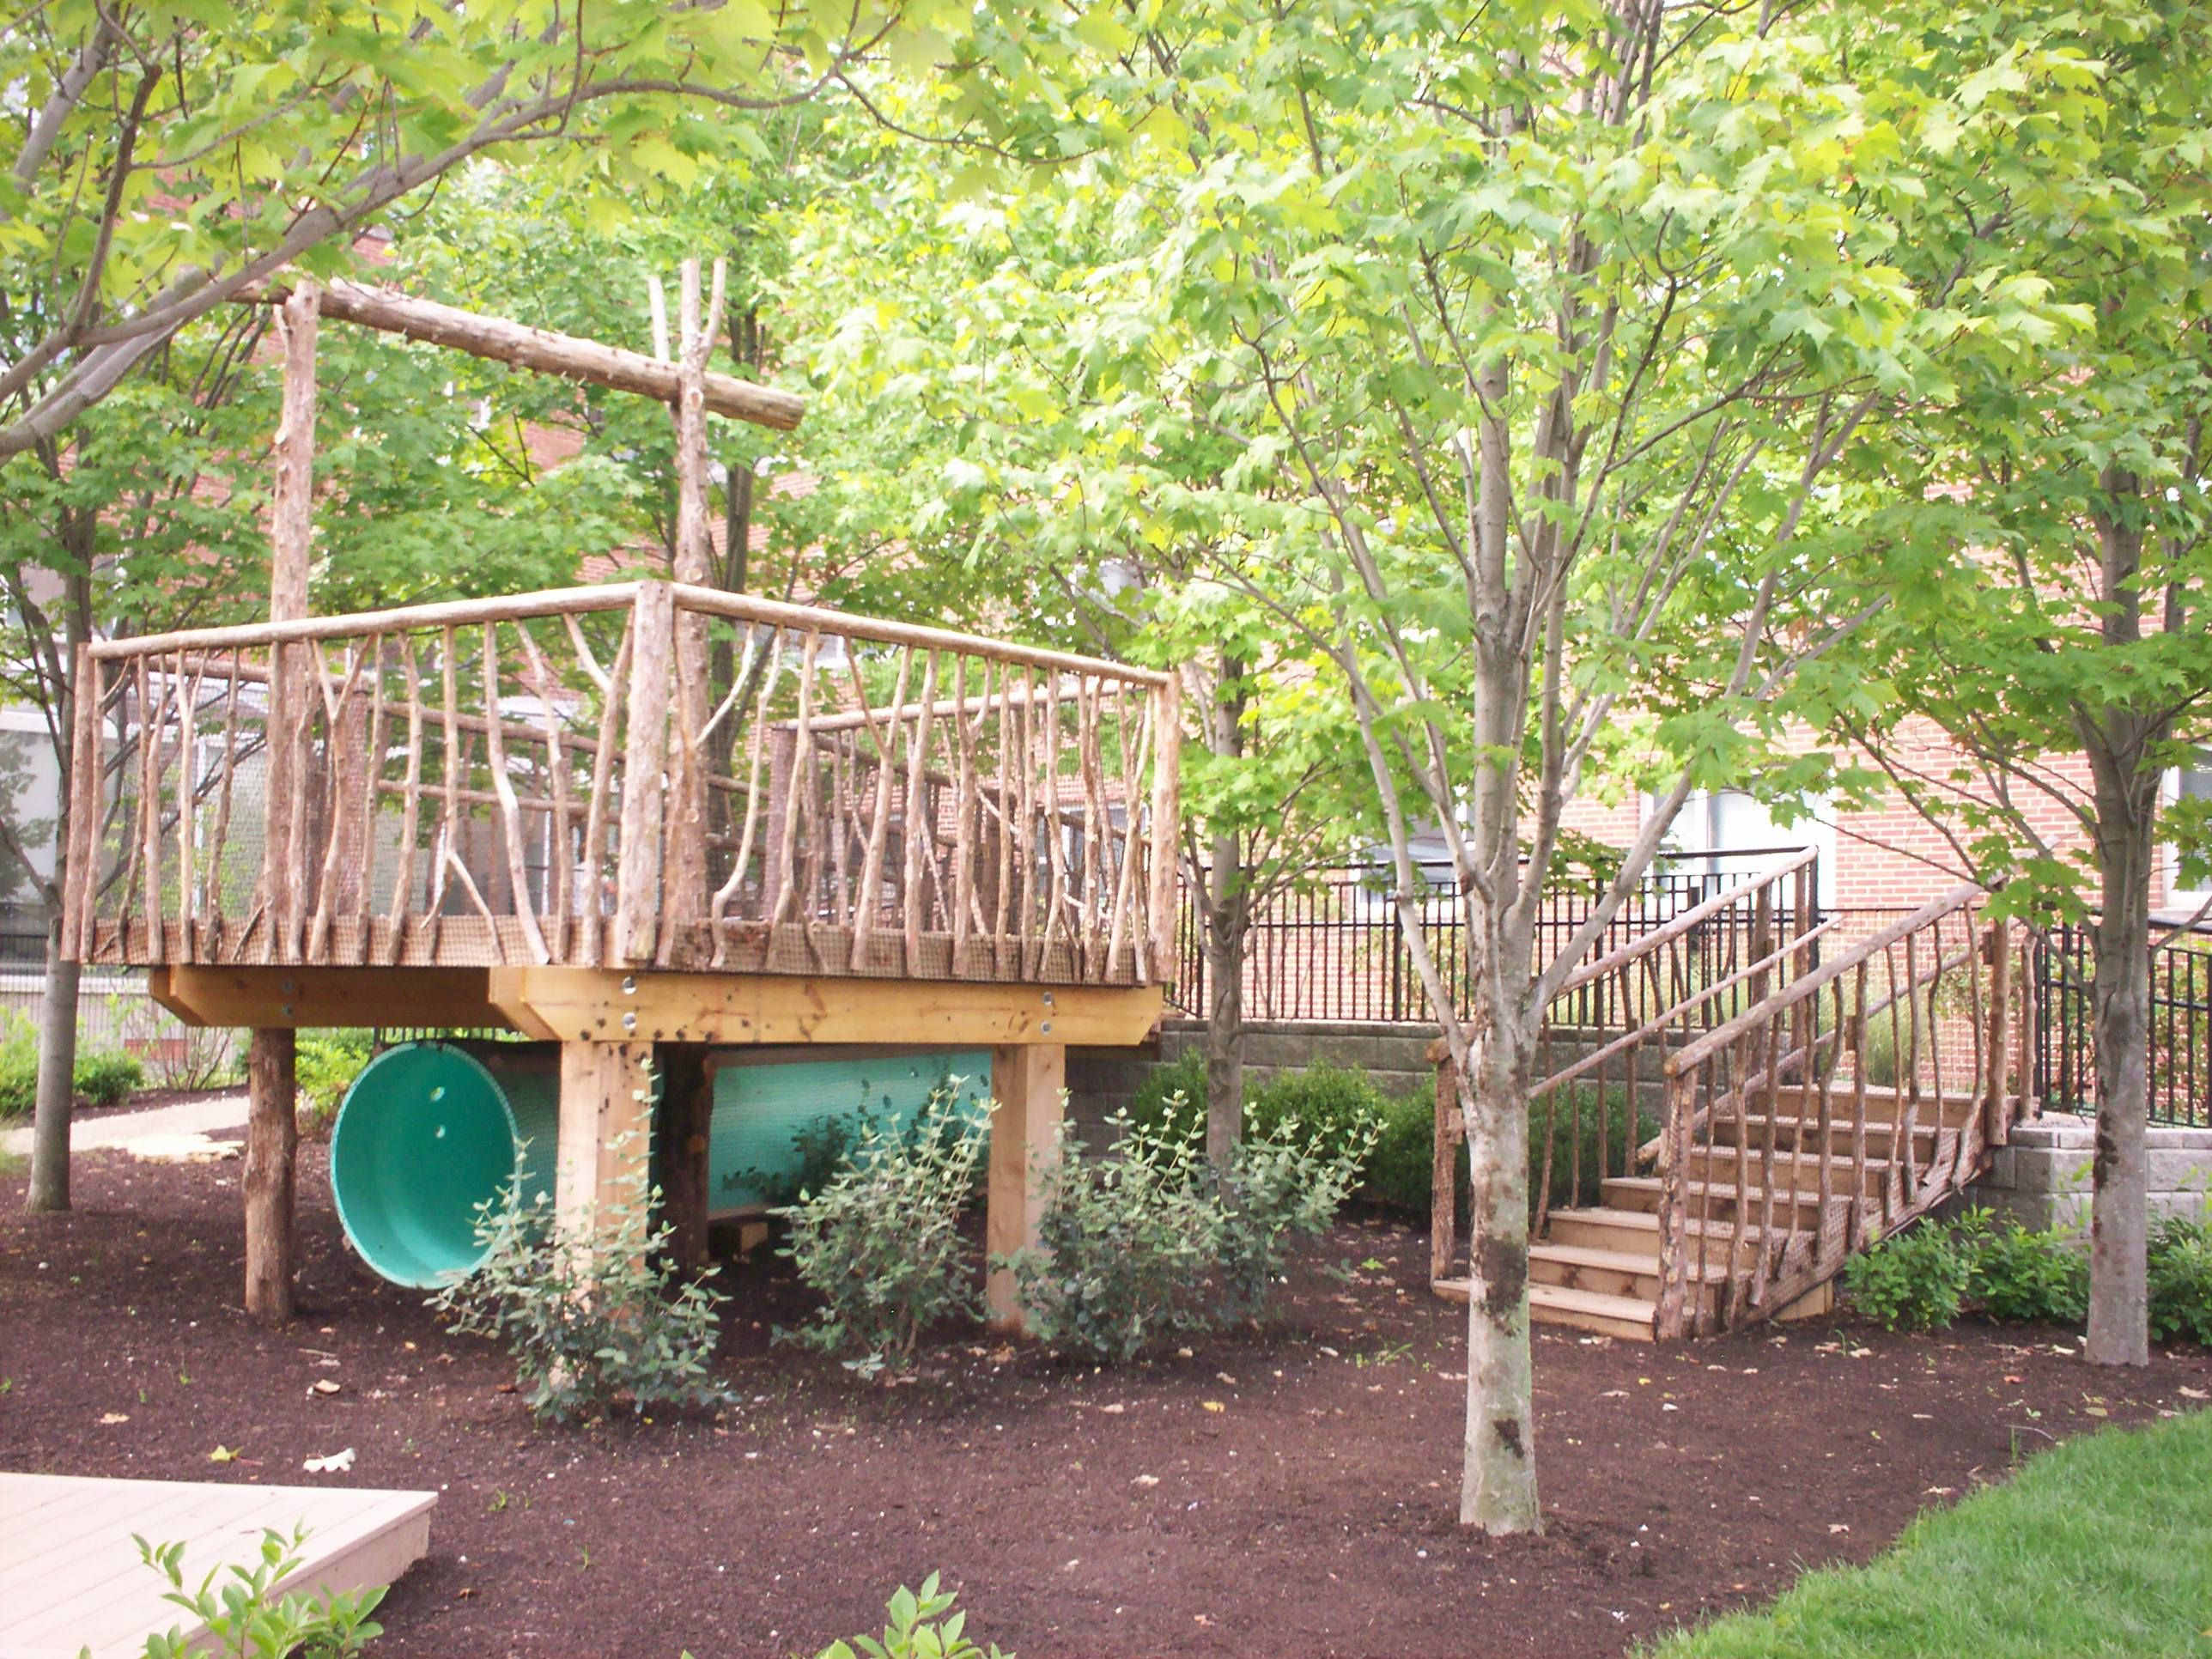 the tree house on the natural playscape at arlitt what a